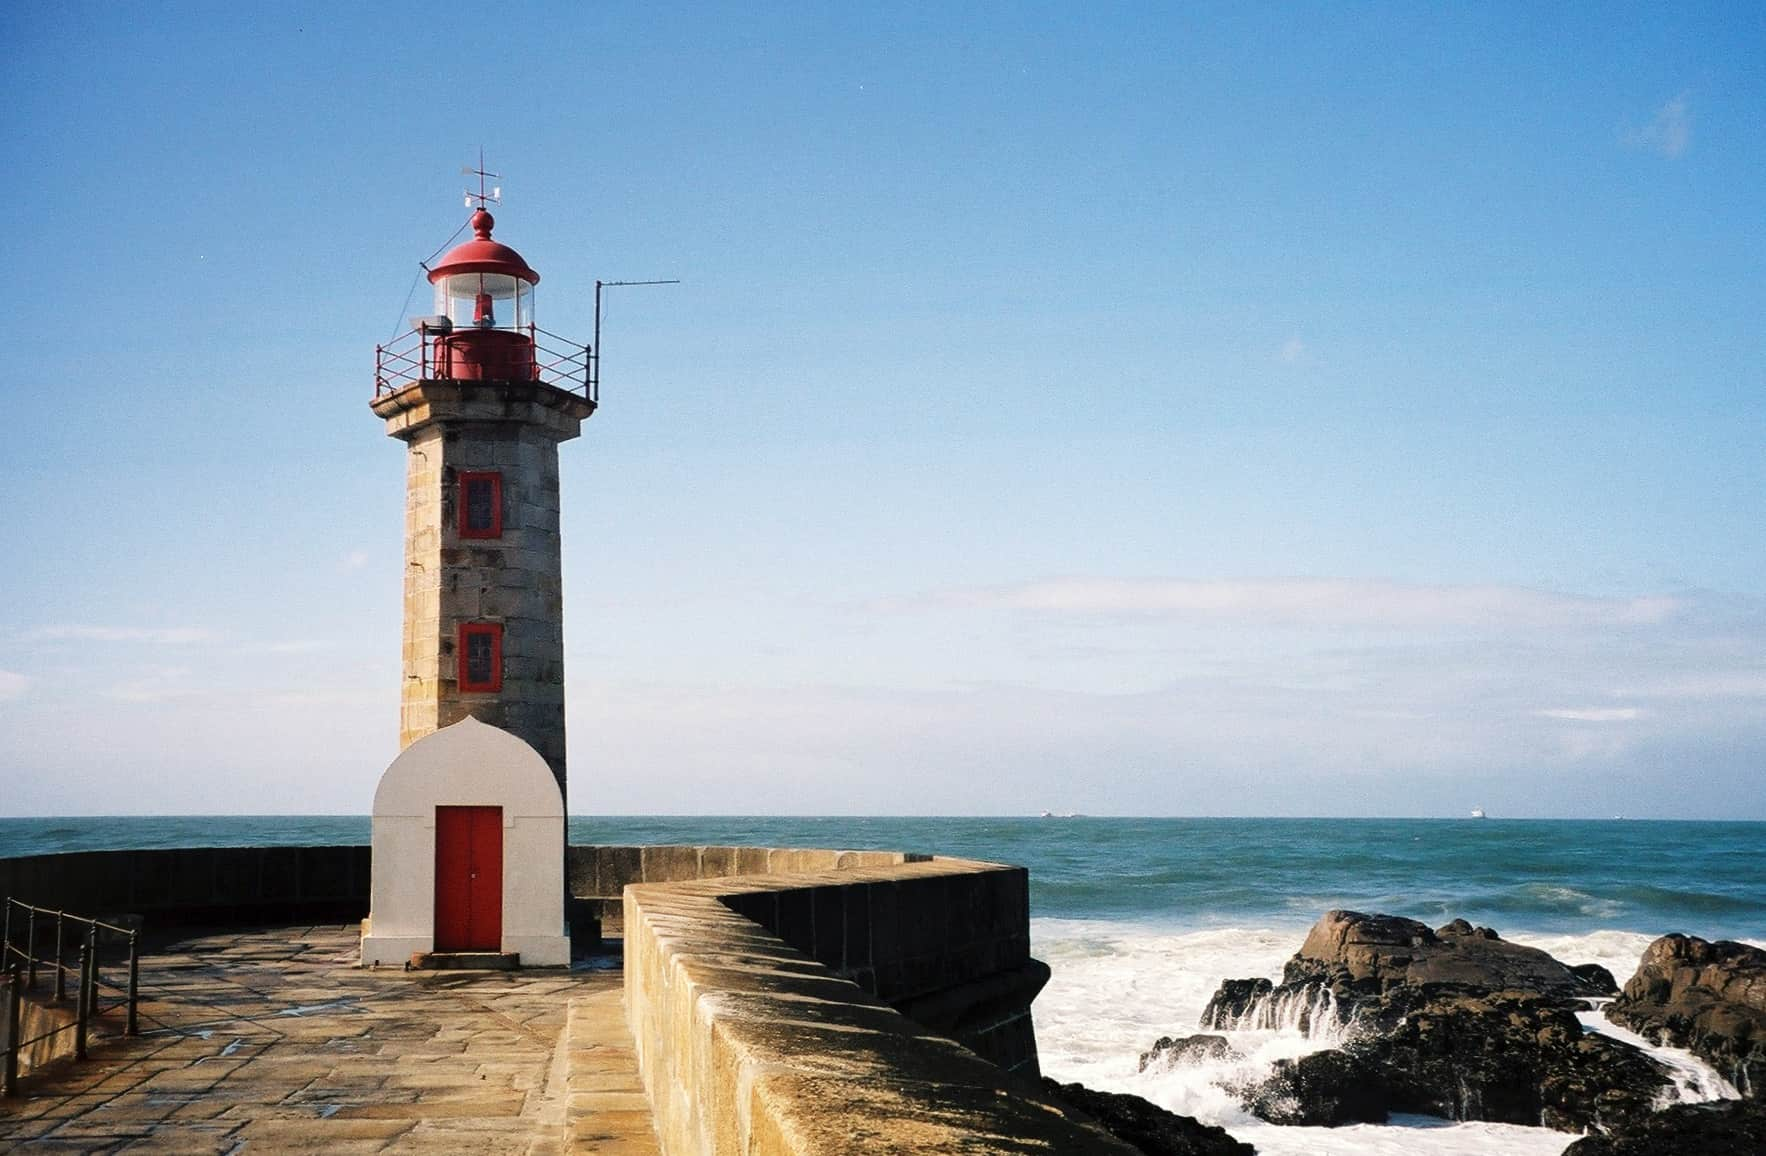 Felgueiras Lighthouse, Porto, Portugal - Best Lighthouses in the World